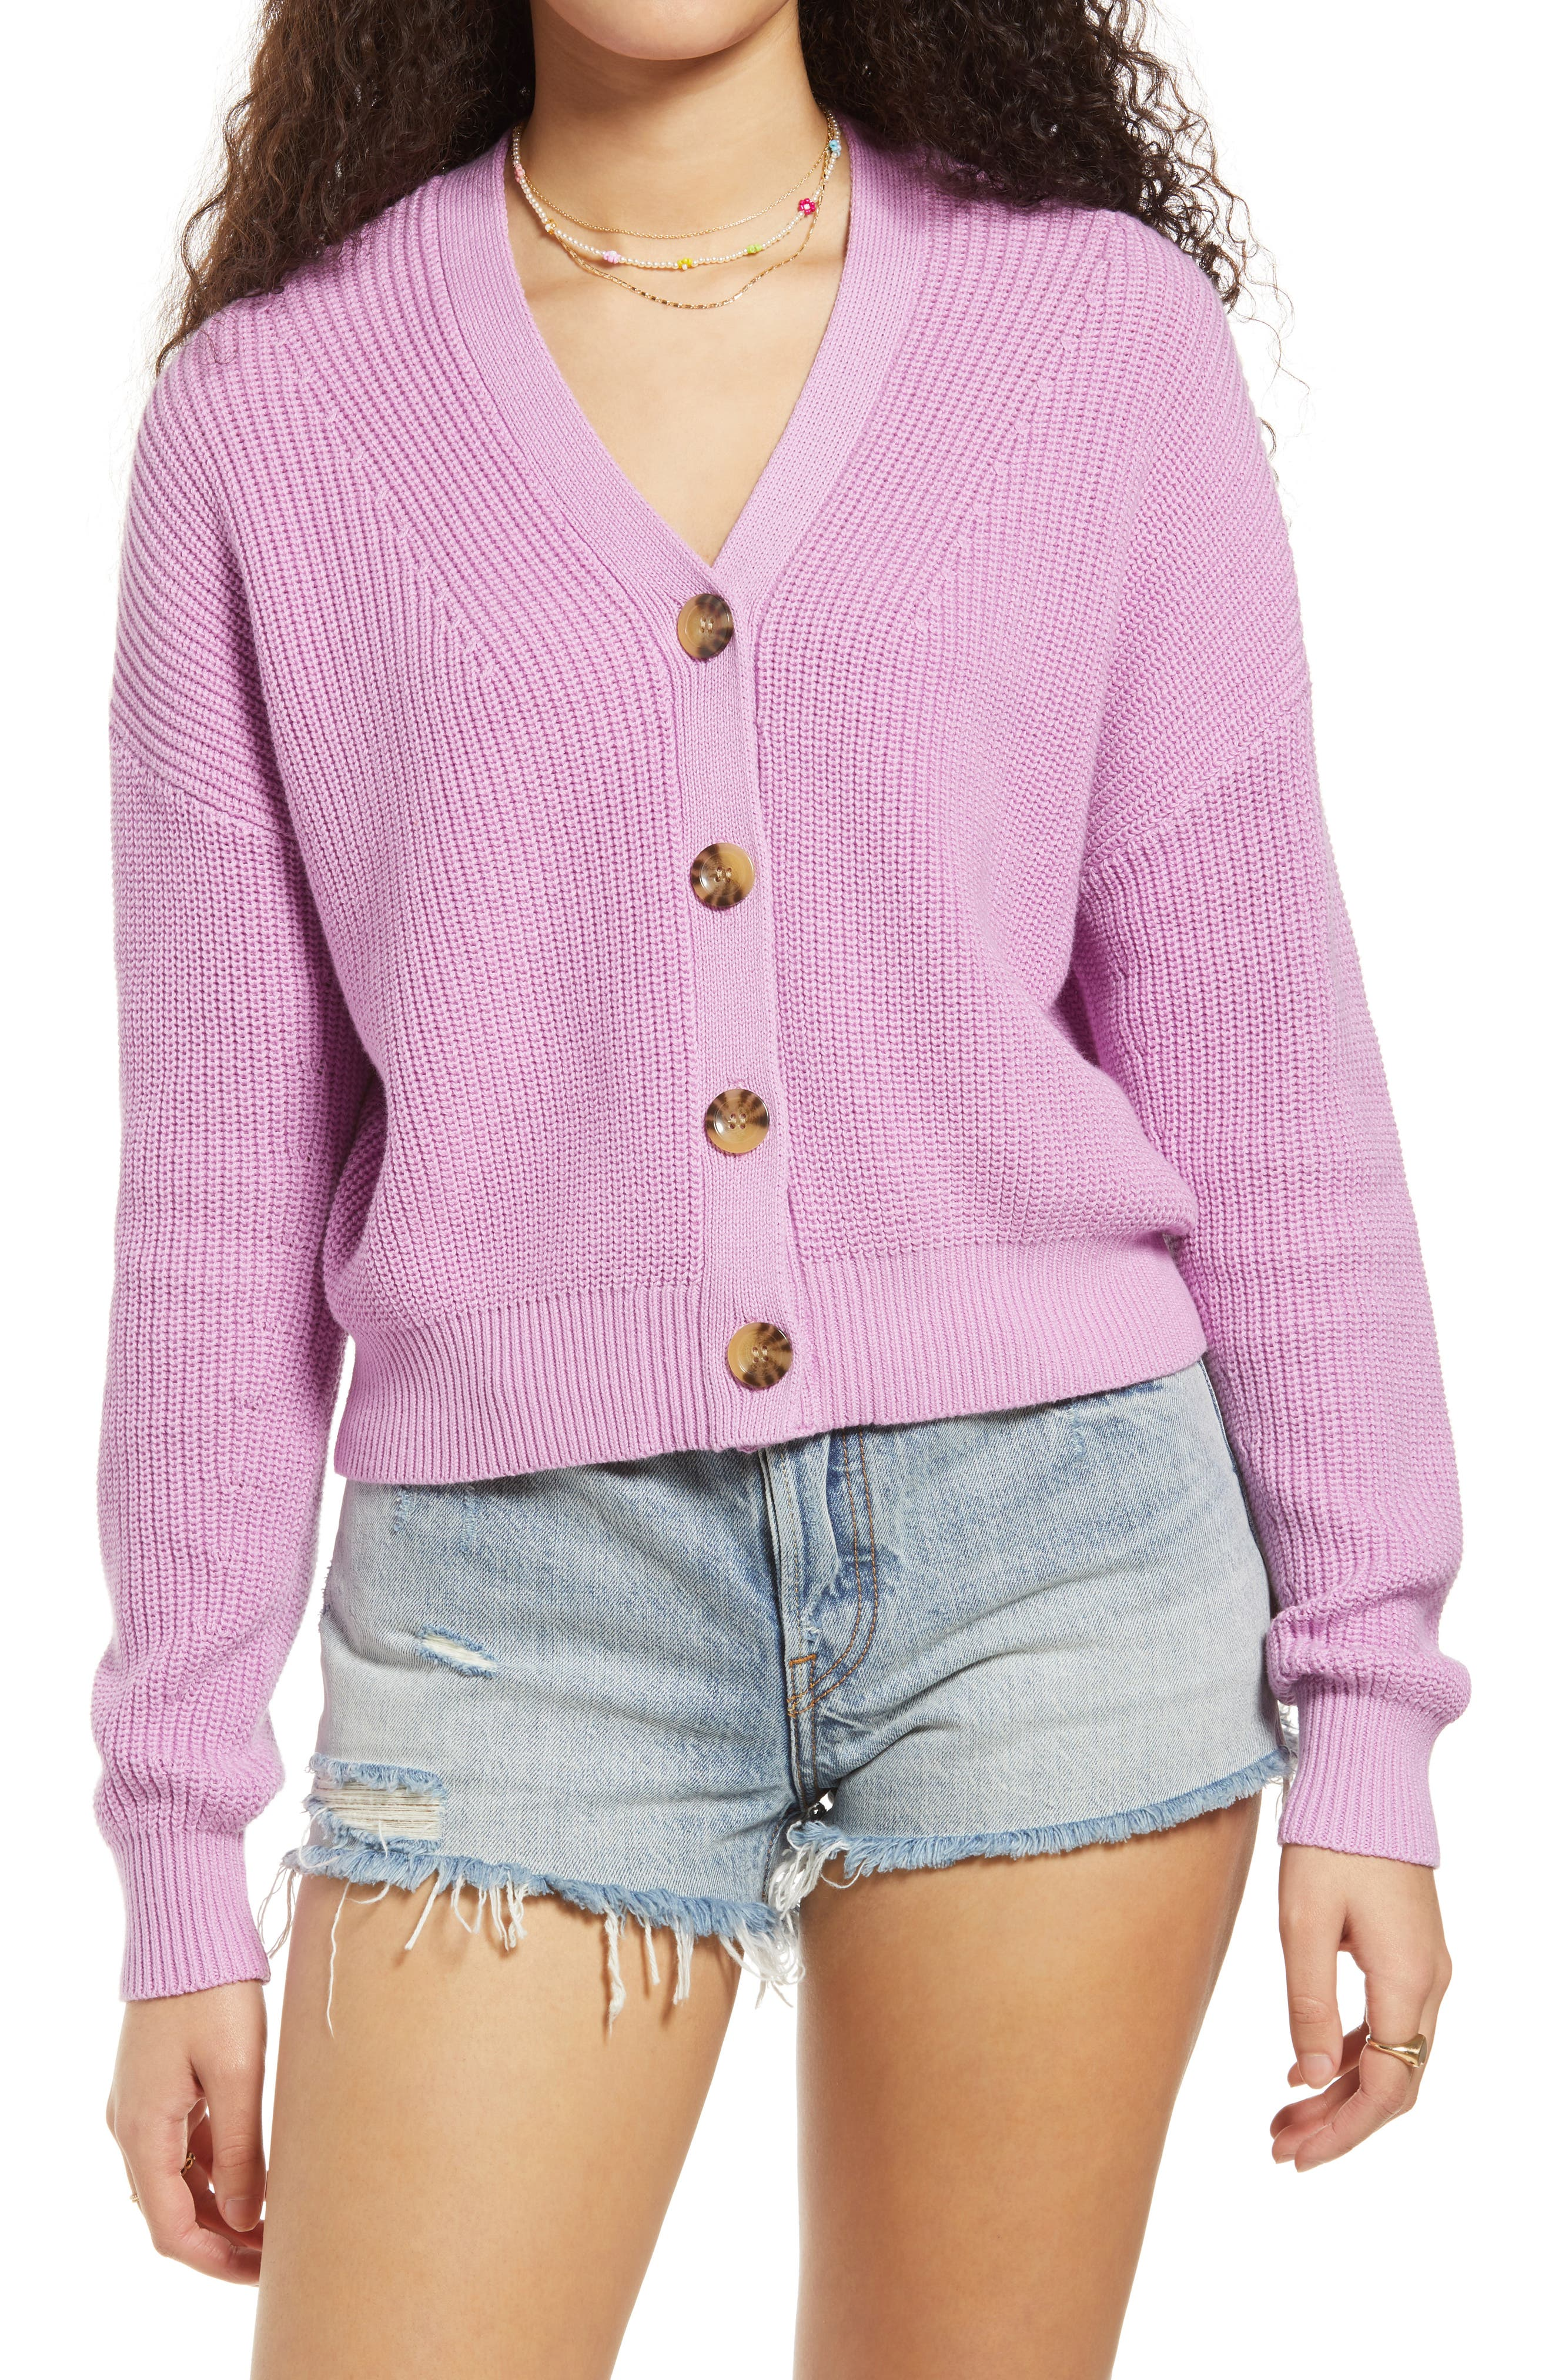 80/'s Pink Stripe Sweater by NORDSTROM BRASS PLUM in Size L